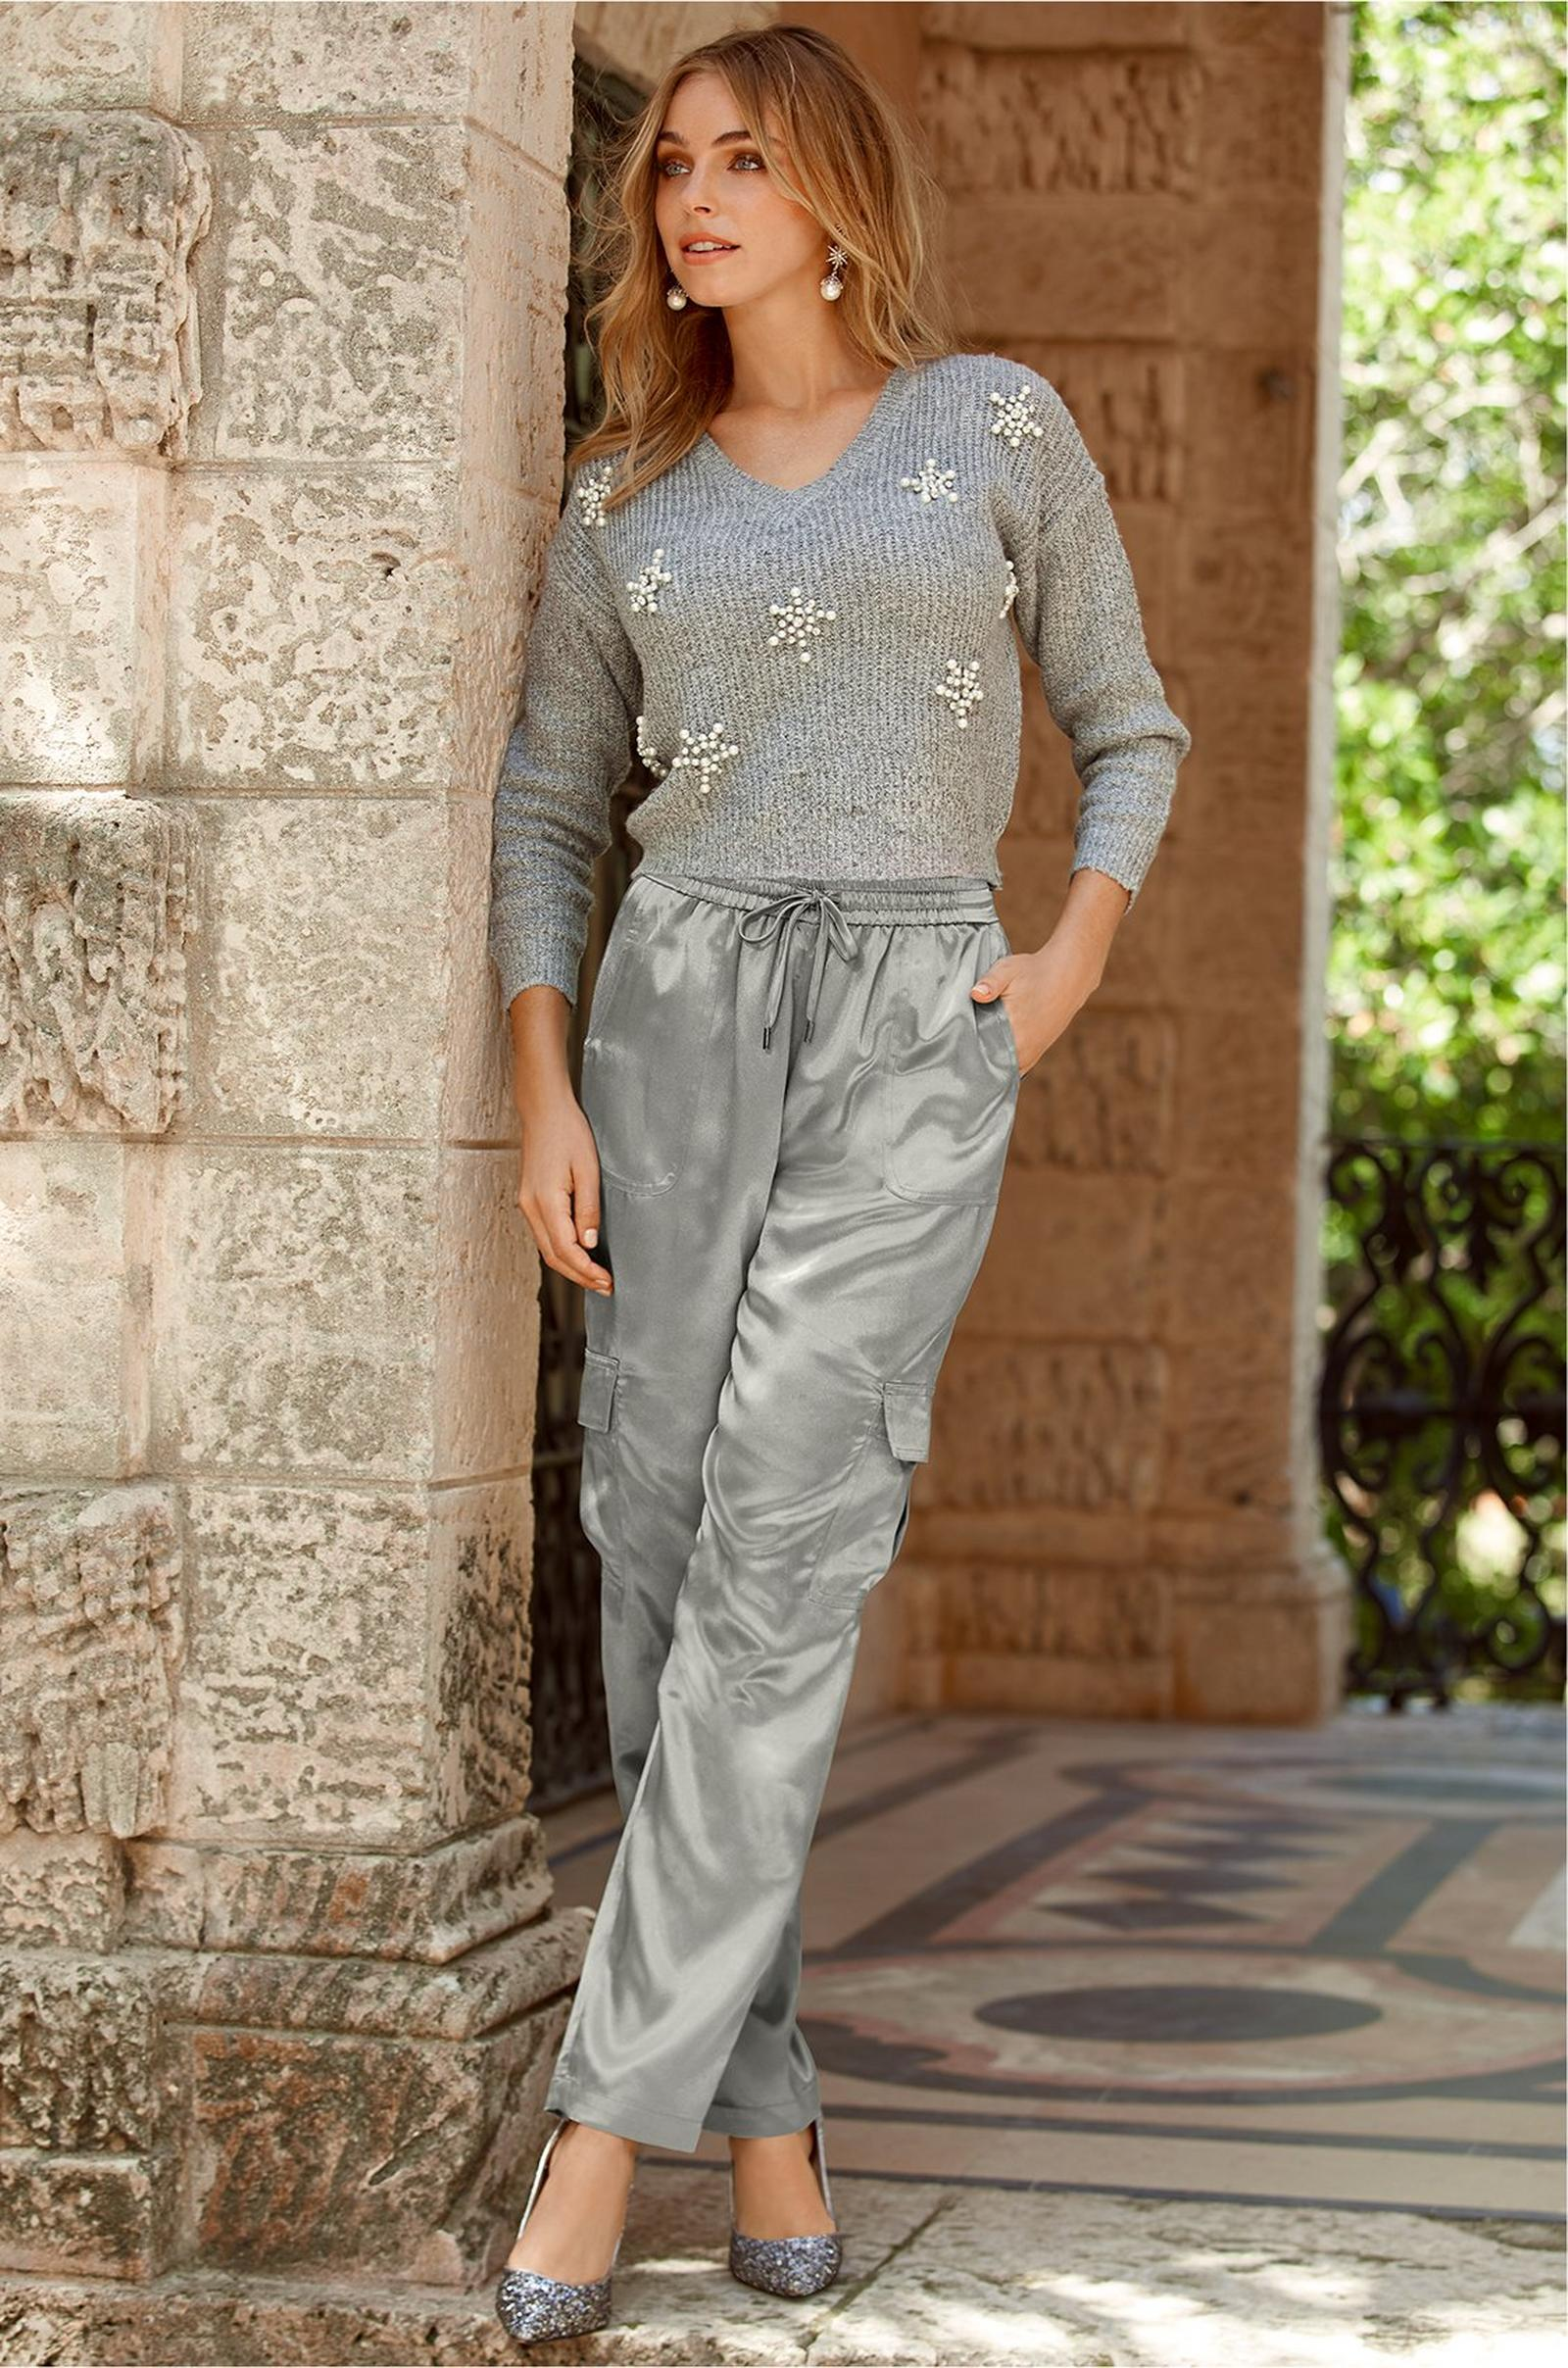 model wearing gray crop sweater with snowflake embellishments with silver metallic cargo pants and sequin pumps.